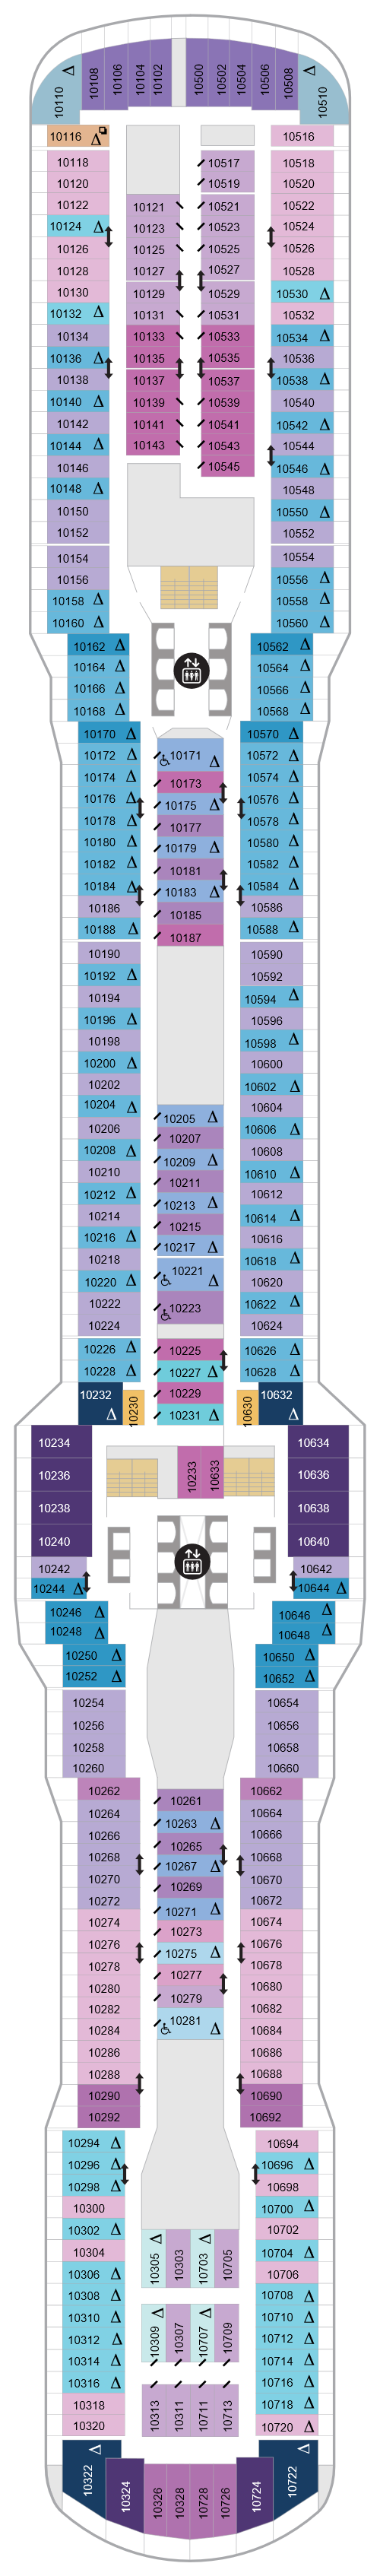 Spectrum Of The Seas Deck 10 layout